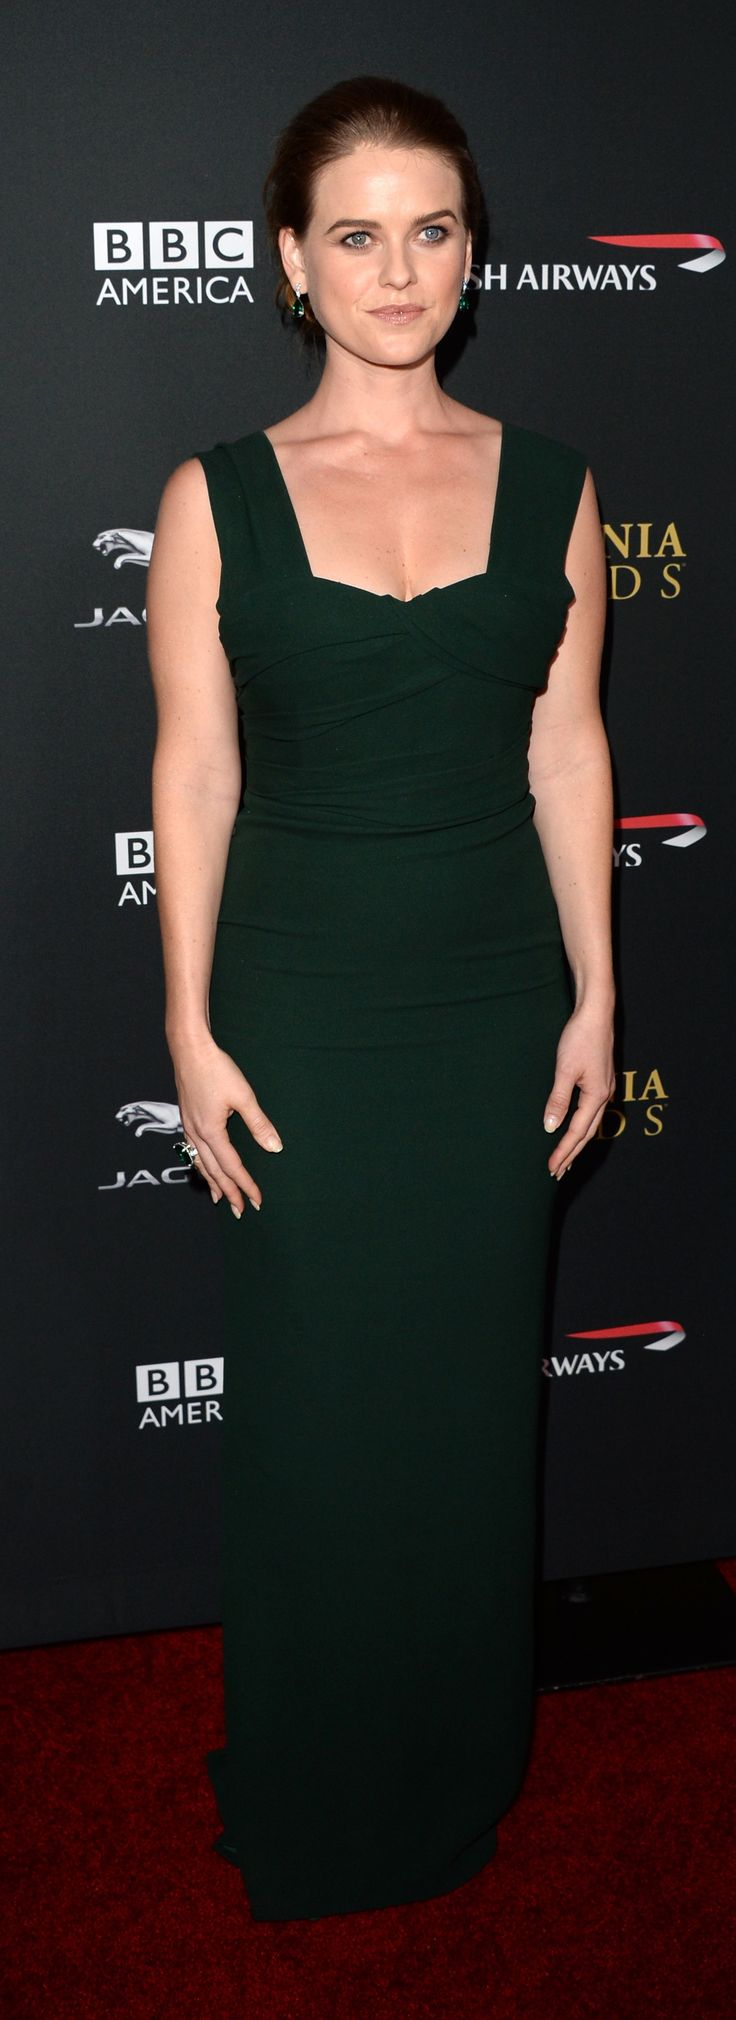 British actress Alice Eve wearing a Burberry dress to attend the BAFTA LA Britannia Awards in Los Angeles